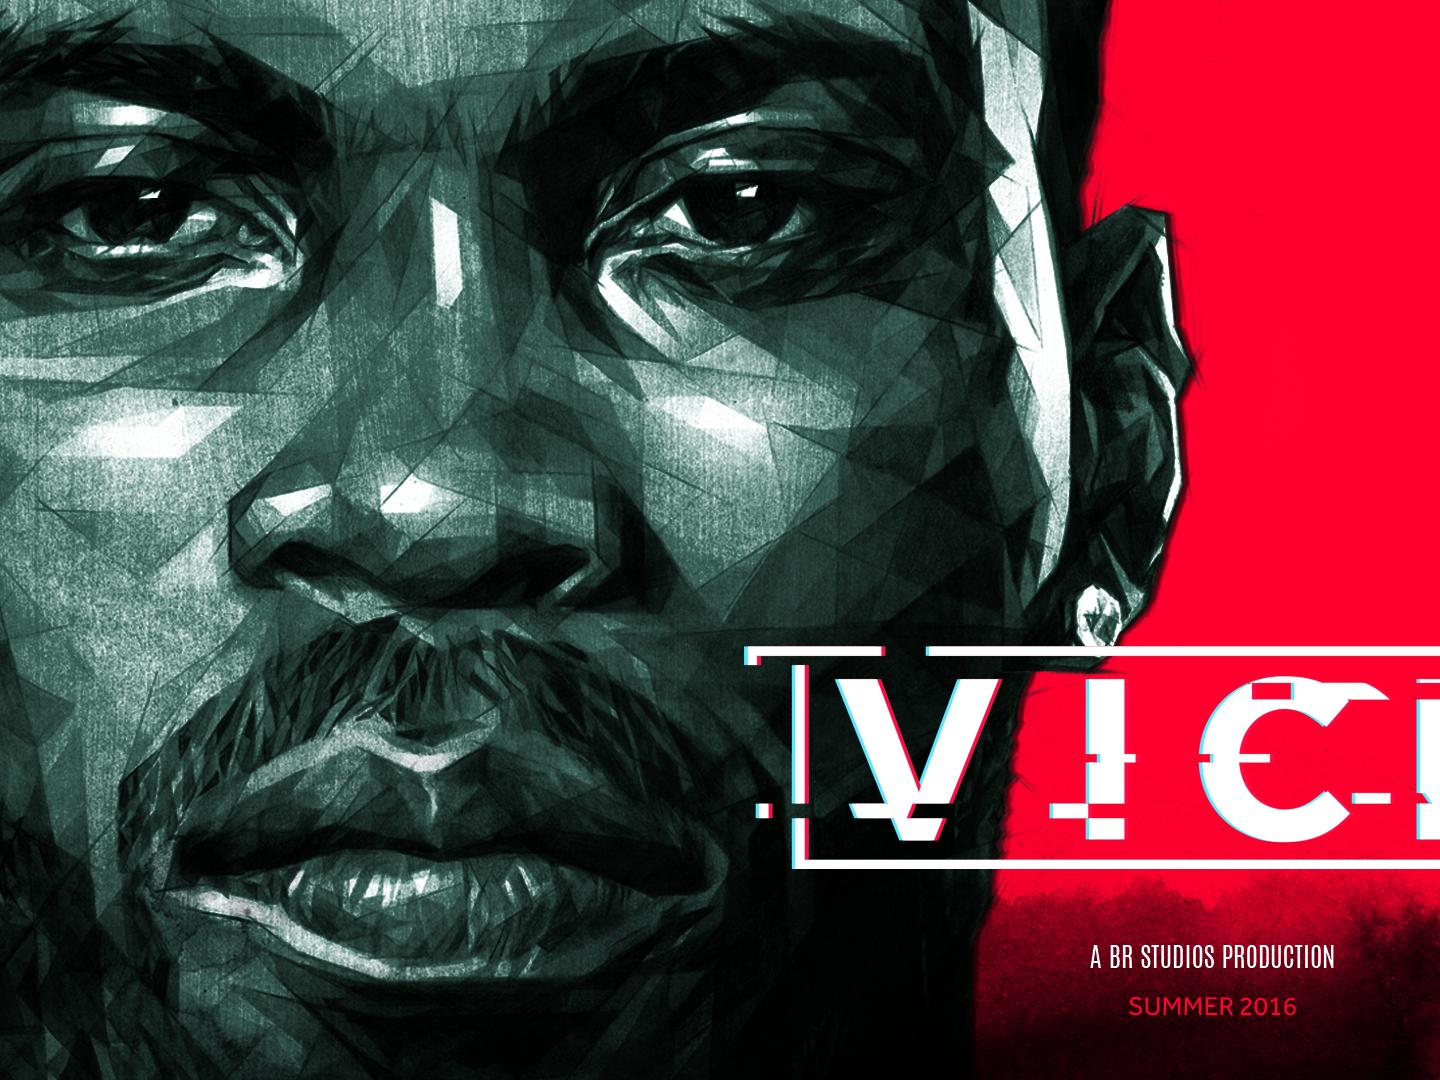 Vick: An Exclusive Bleacher Report Documentary Thumbnail